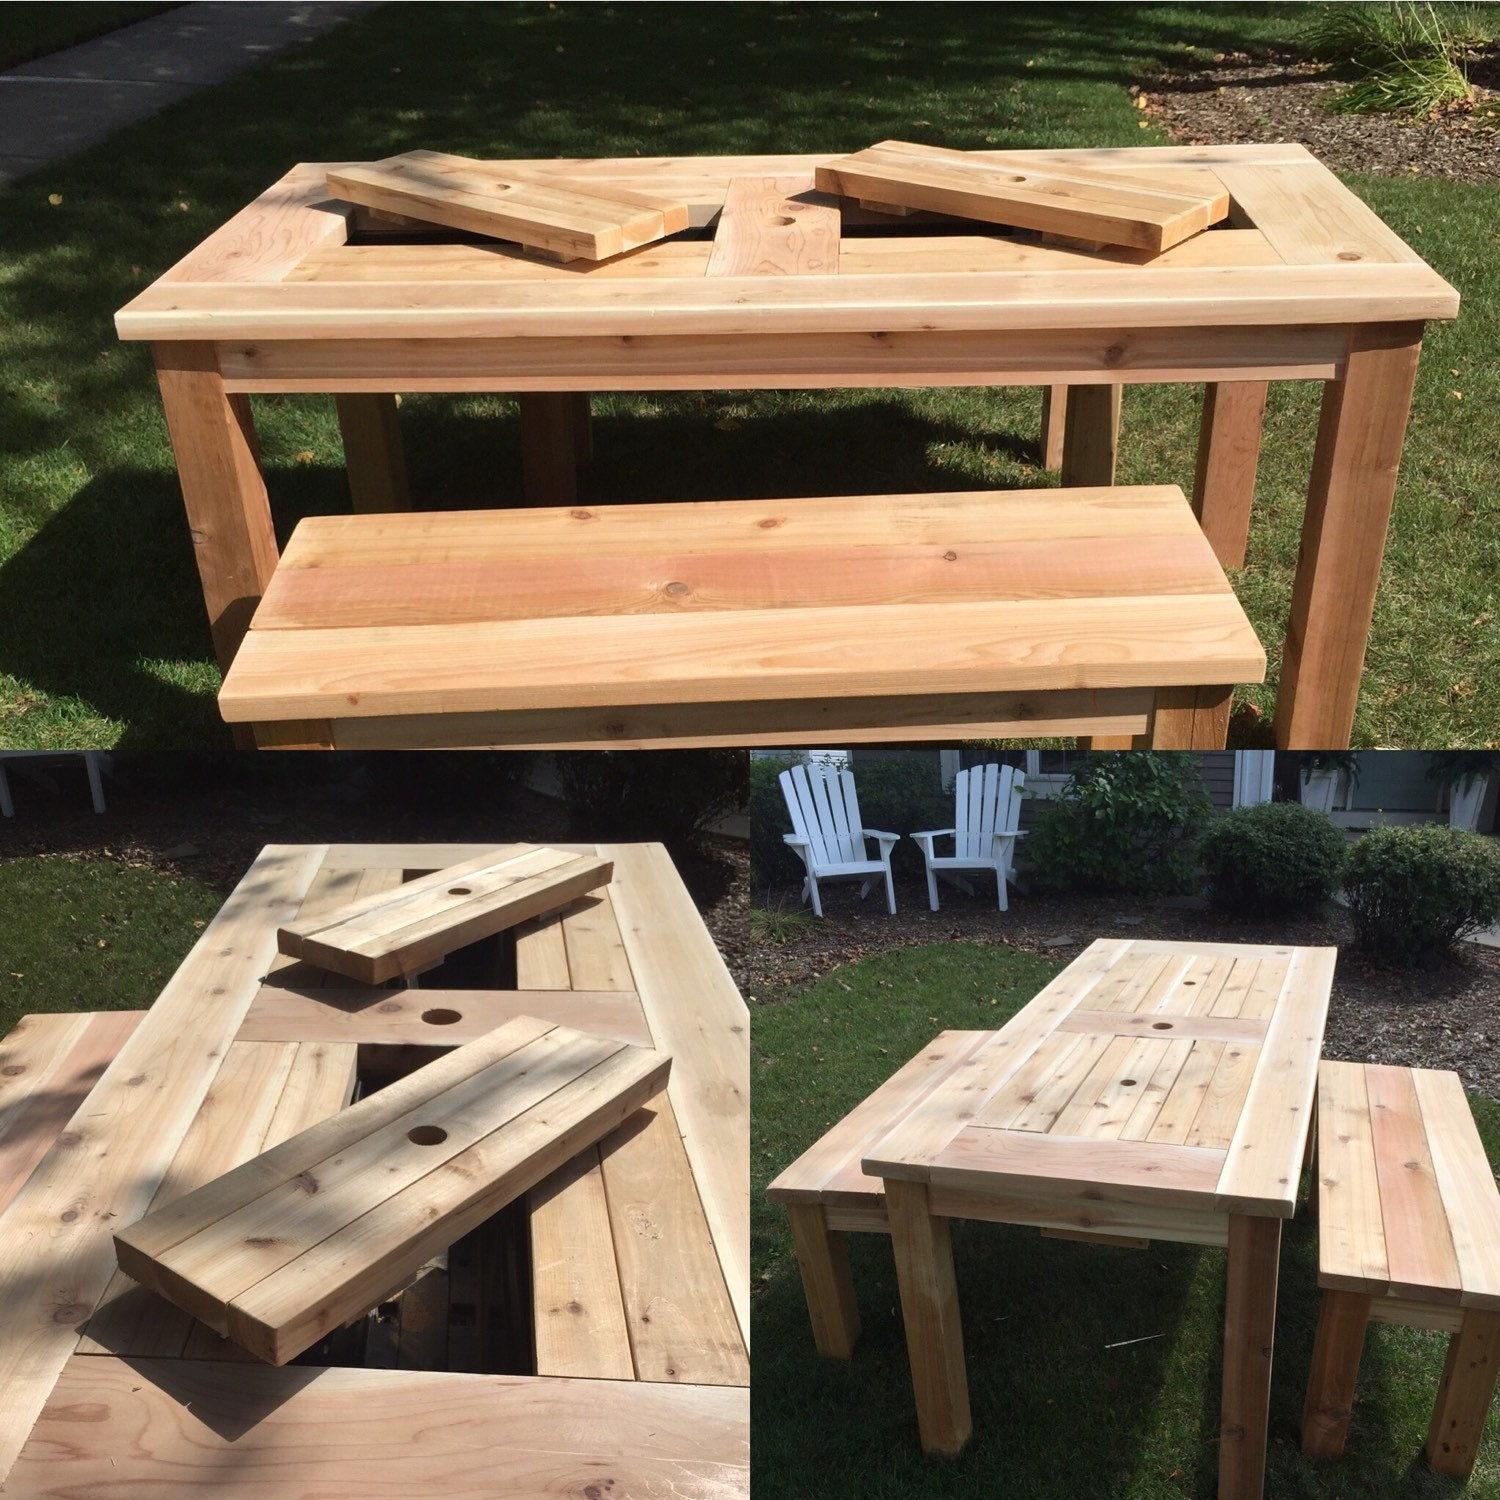 Patio picnic table with drink coolers seats 6 8 people for 108 table seats how many